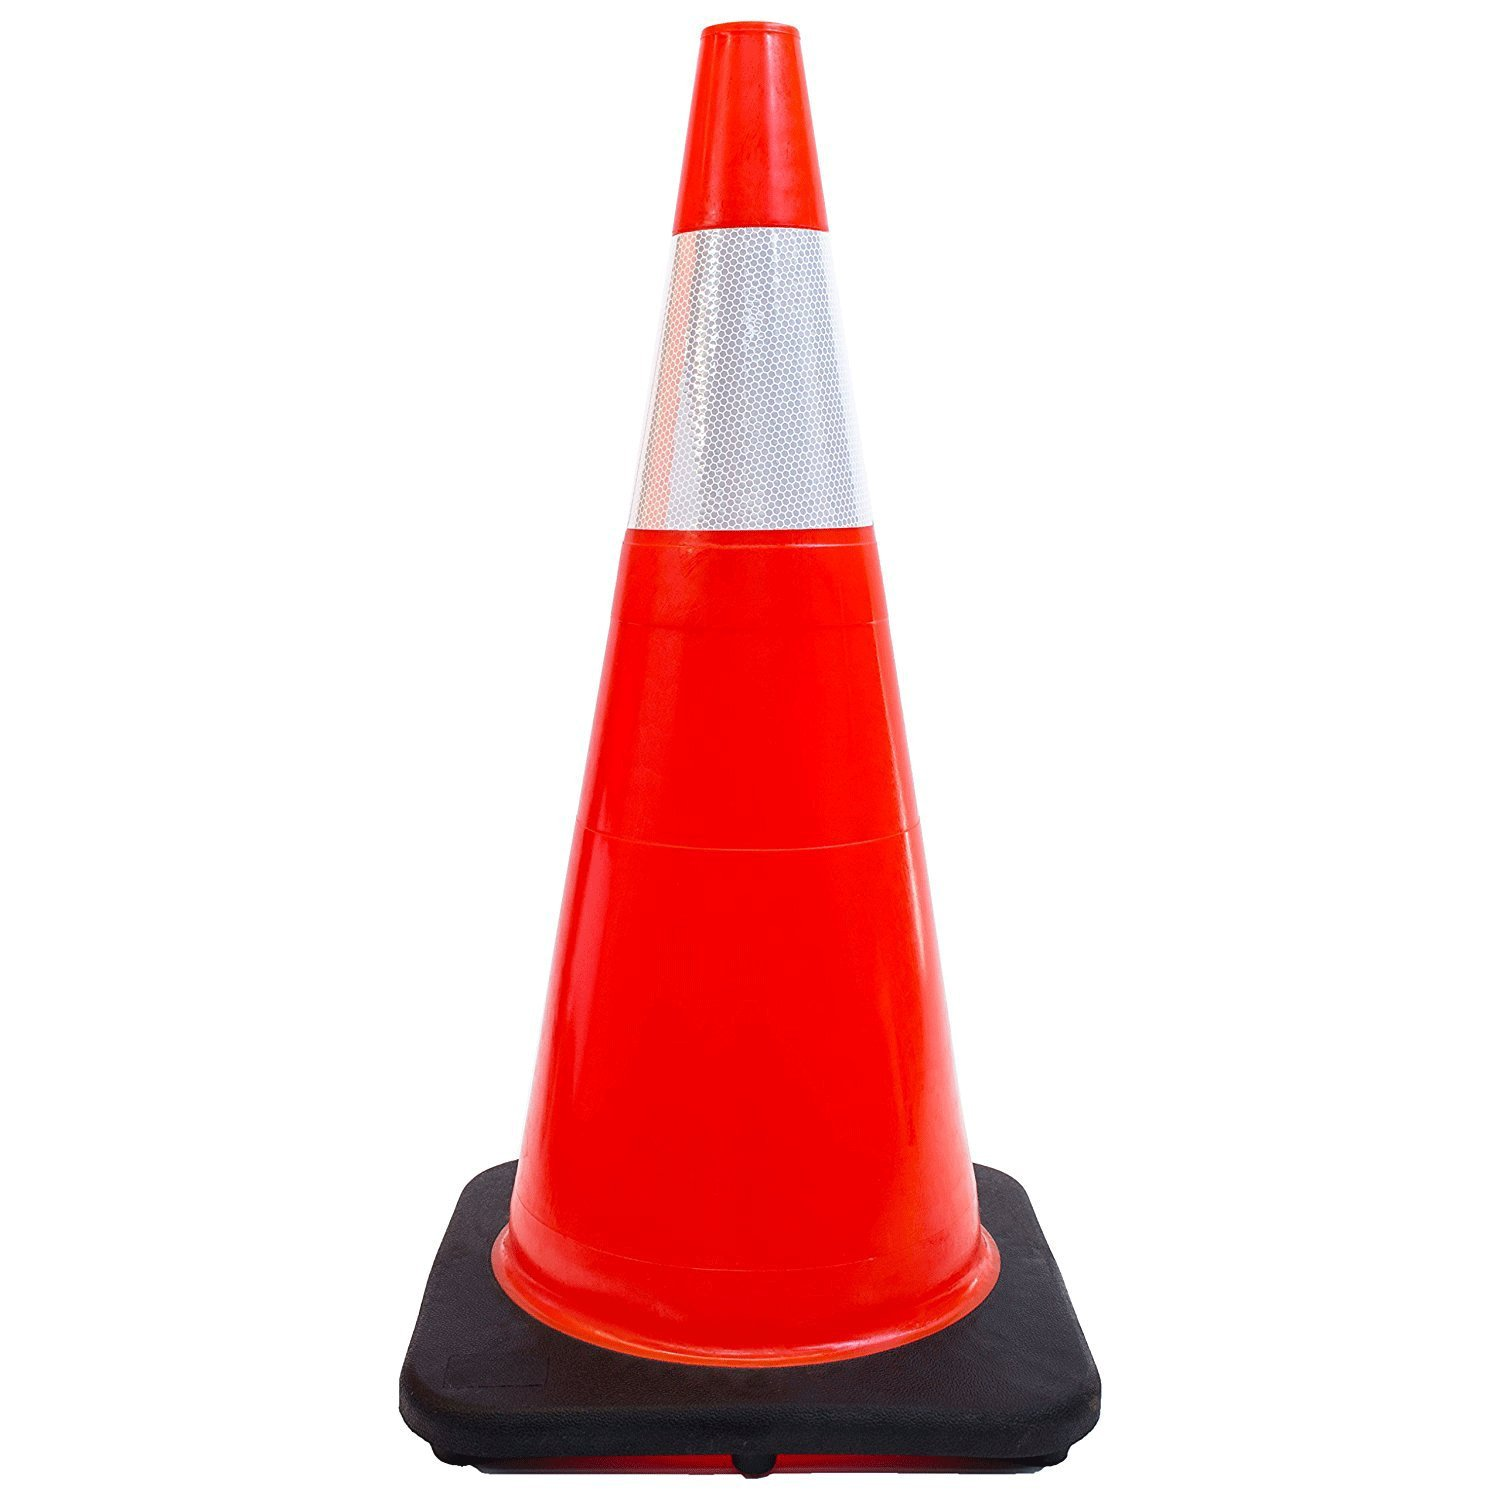 Pet Products 6pcs Colorful Plastic Slalom Roller Skating Pile Mini Cones Traffic Signs Marks Bird Supplies Promotion